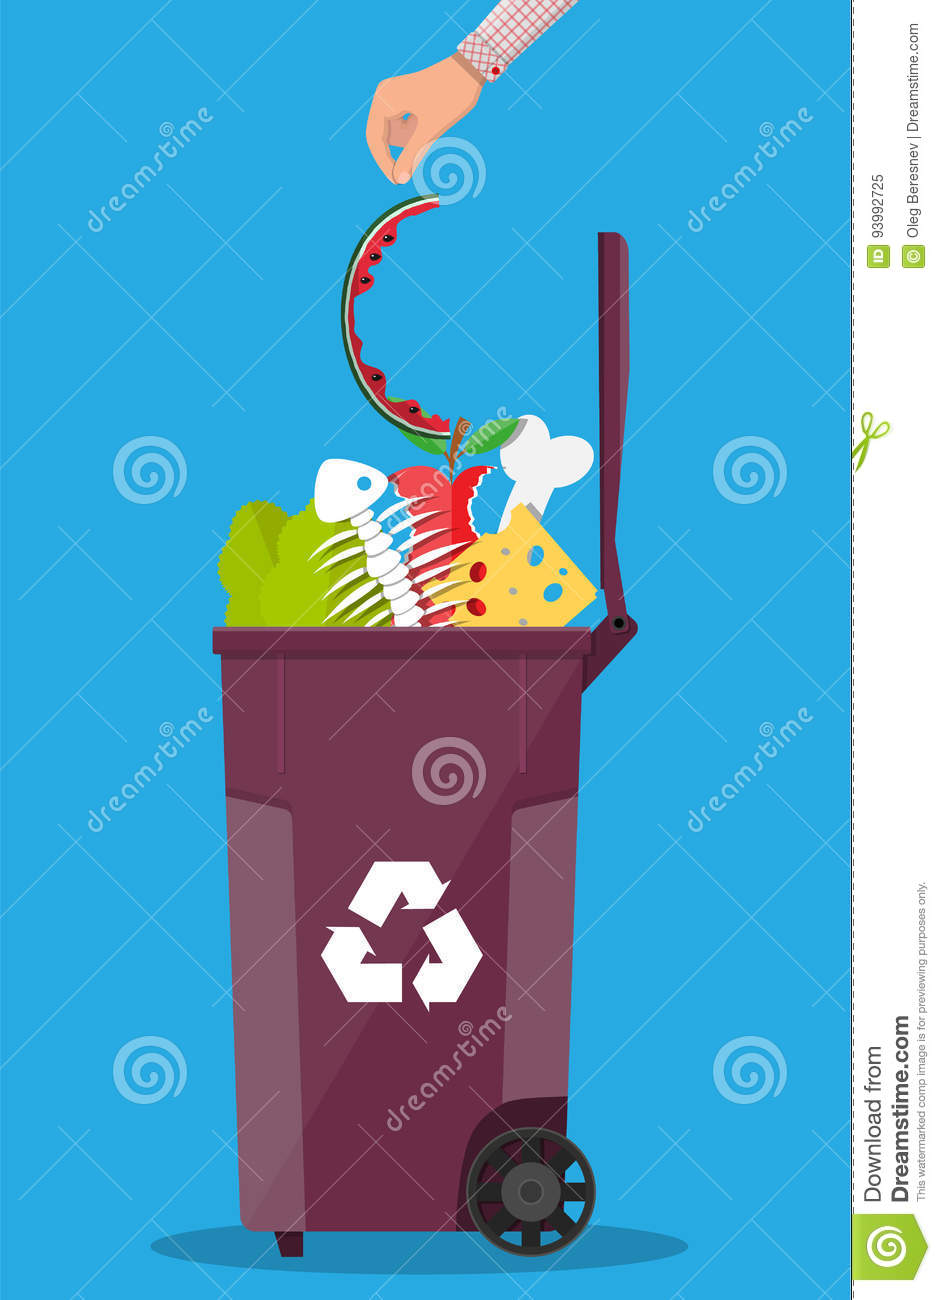 Garbage Bin Container Full Of Junk Food Stock Vector - Illustration ...